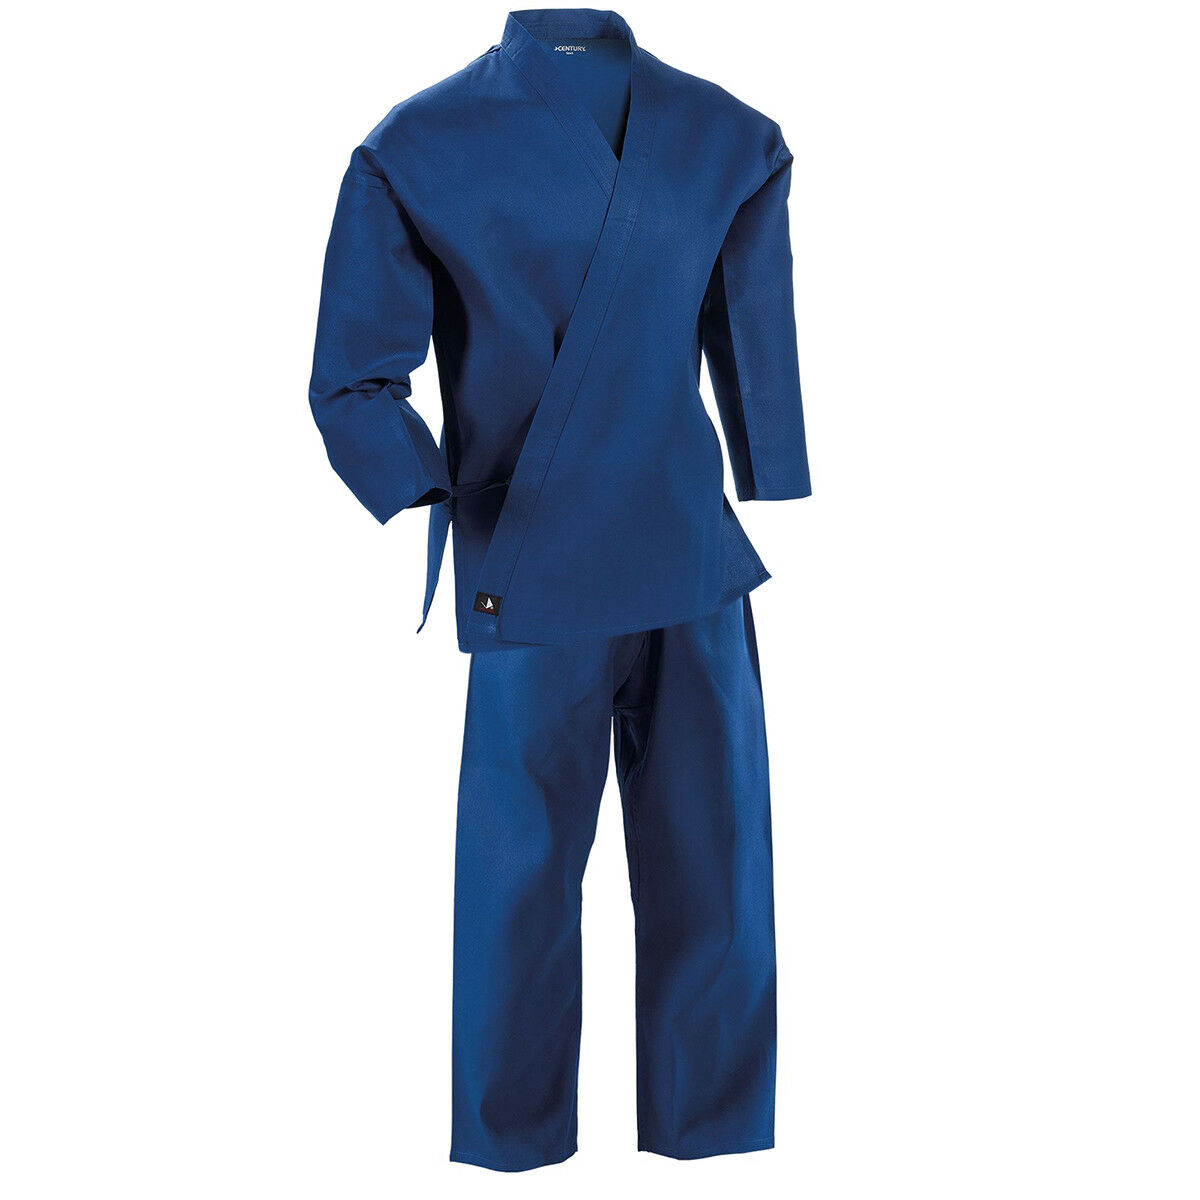 Century 6 oz. Lightweight Student Uniform with Elastic Pants - bluee